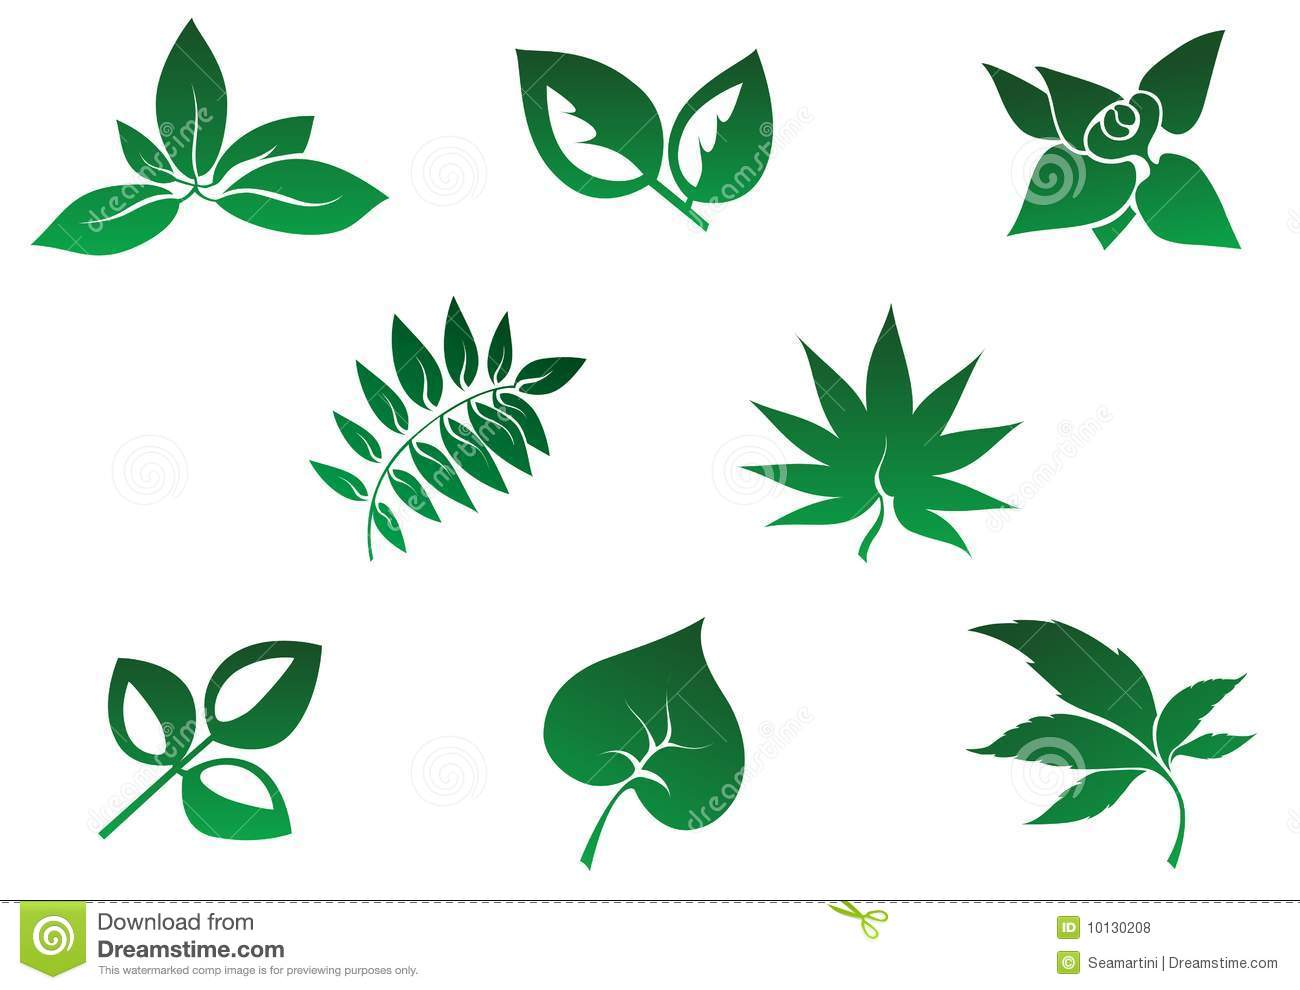 Leaf Icon - Free Icons and PNG Backgrounds